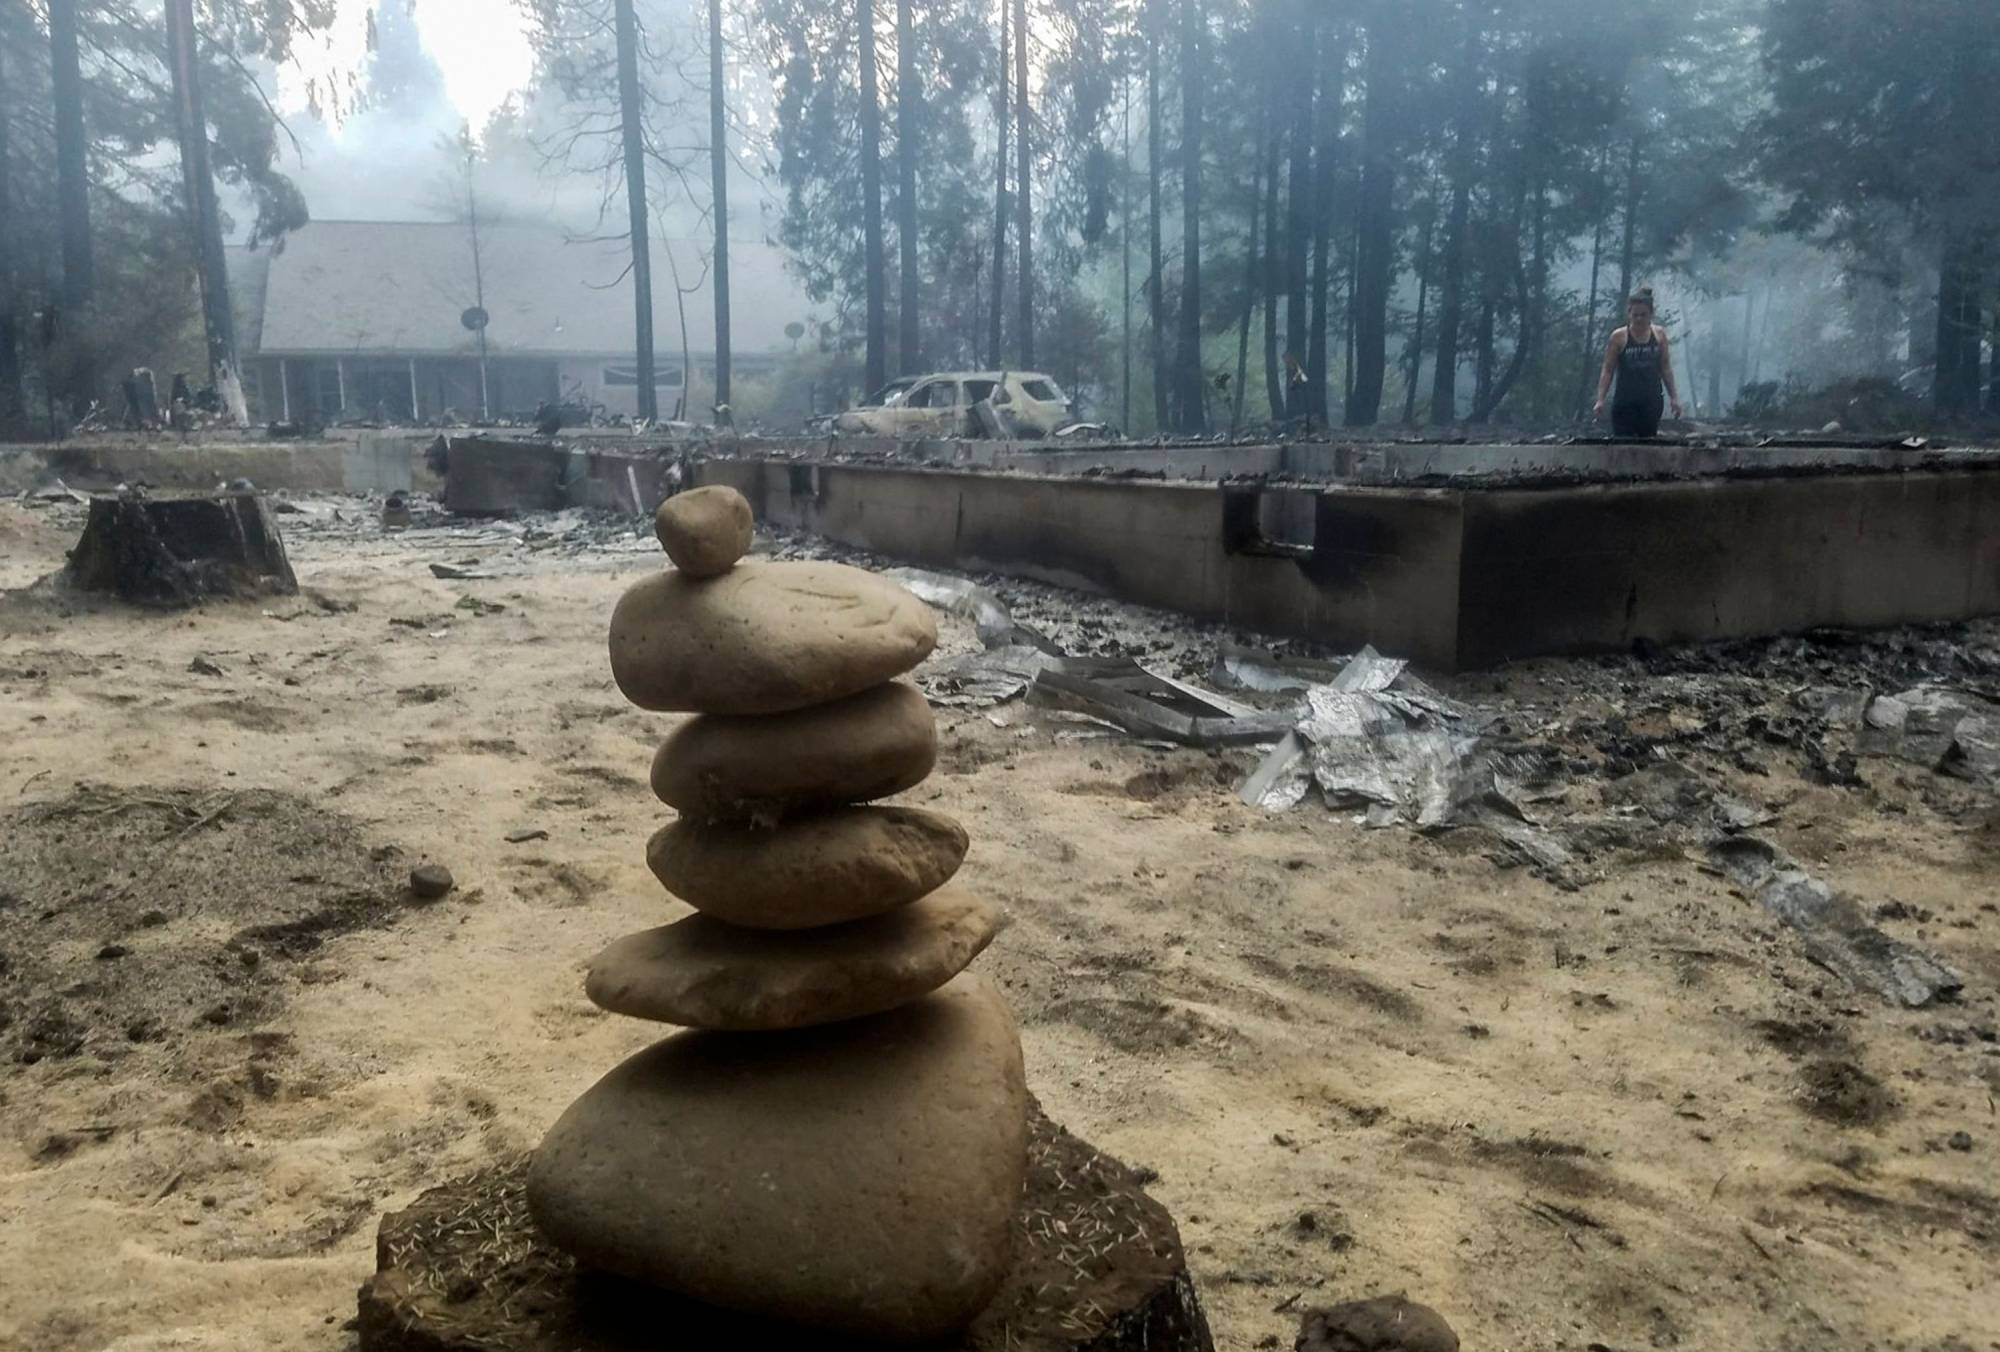 A woman walks near the foundation of a burned out house after the passing of the Holiday Farm fire in McKenzie Bridge, Oregon, on Wednesday.    AFP-JIJI